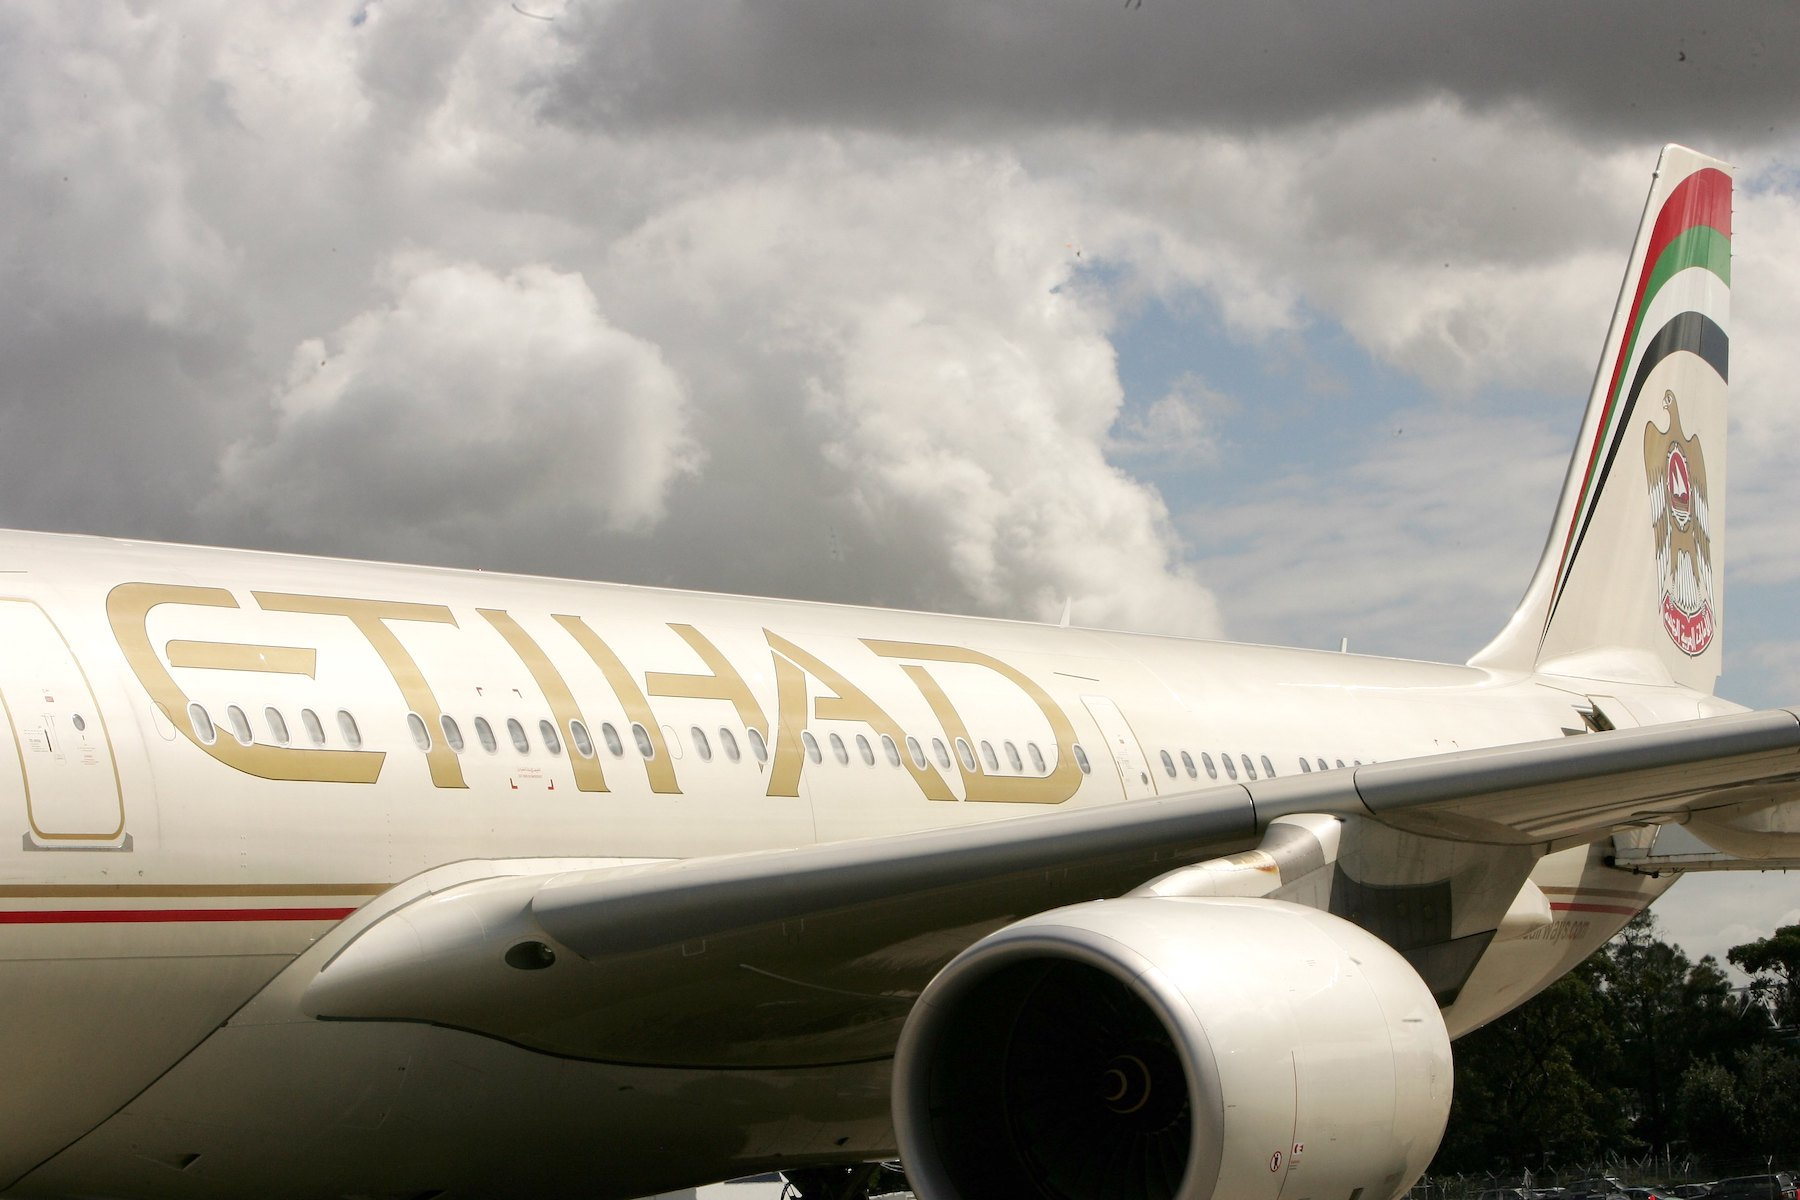 Two Brothers Guilty of Etihad Plane Bomb Plot in Sydney